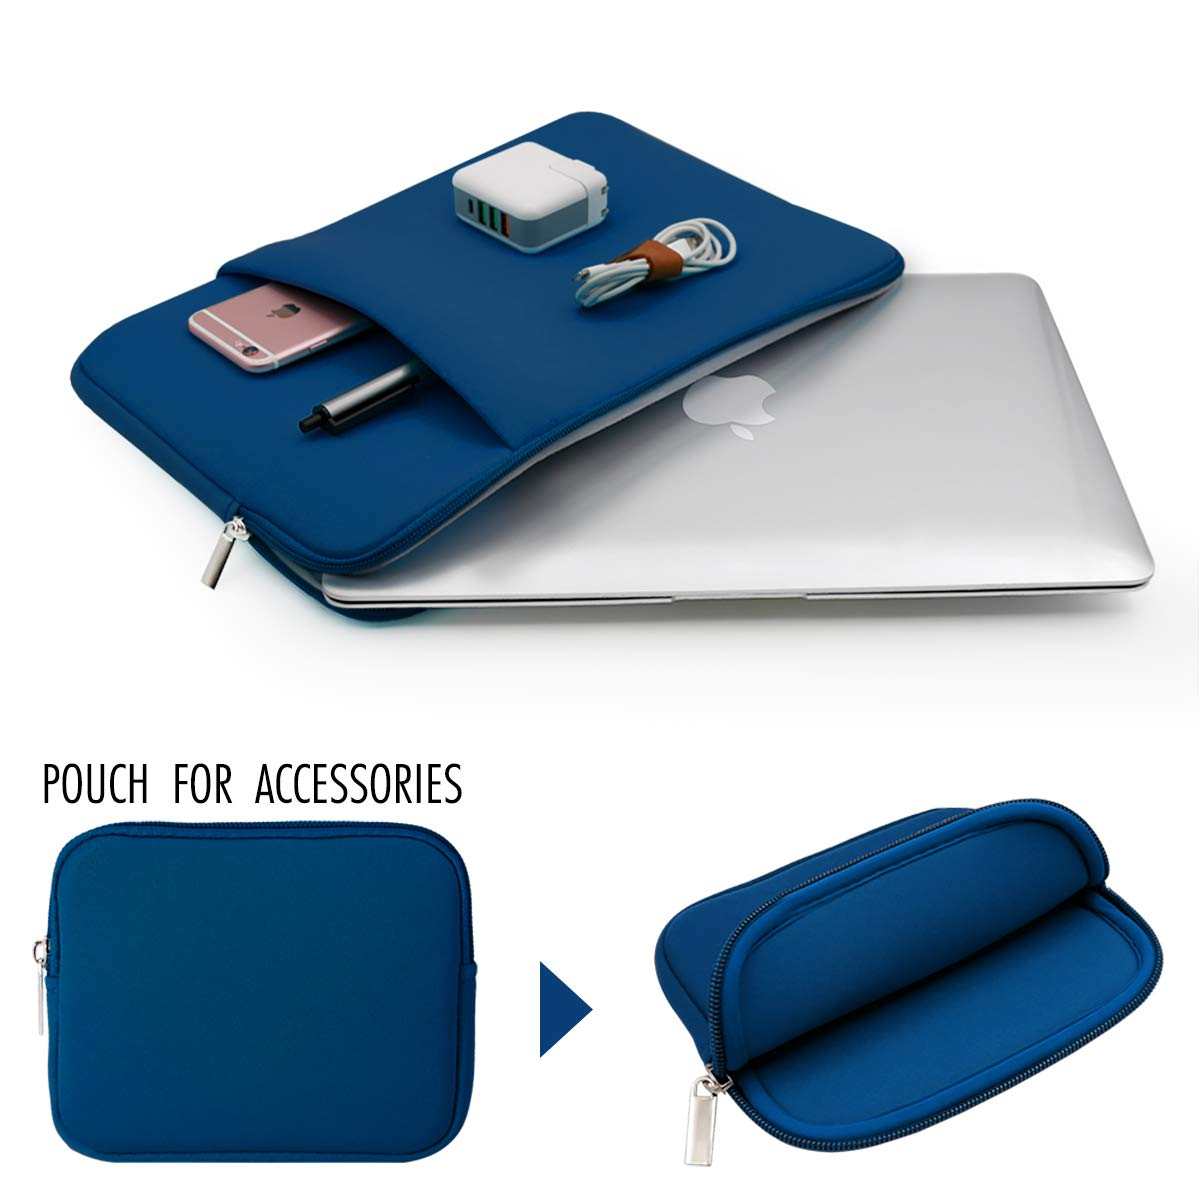 Navy Blue RAINYEAR 11-11.6 Inch Laptop Sleeve Protective Case Pocket Carrying Cover Bag with Accessories Pouch,Compatible 11.6 MacBook Air Notebook Ultrabook Chromebook for Dell HP ThinkPad Lenovo